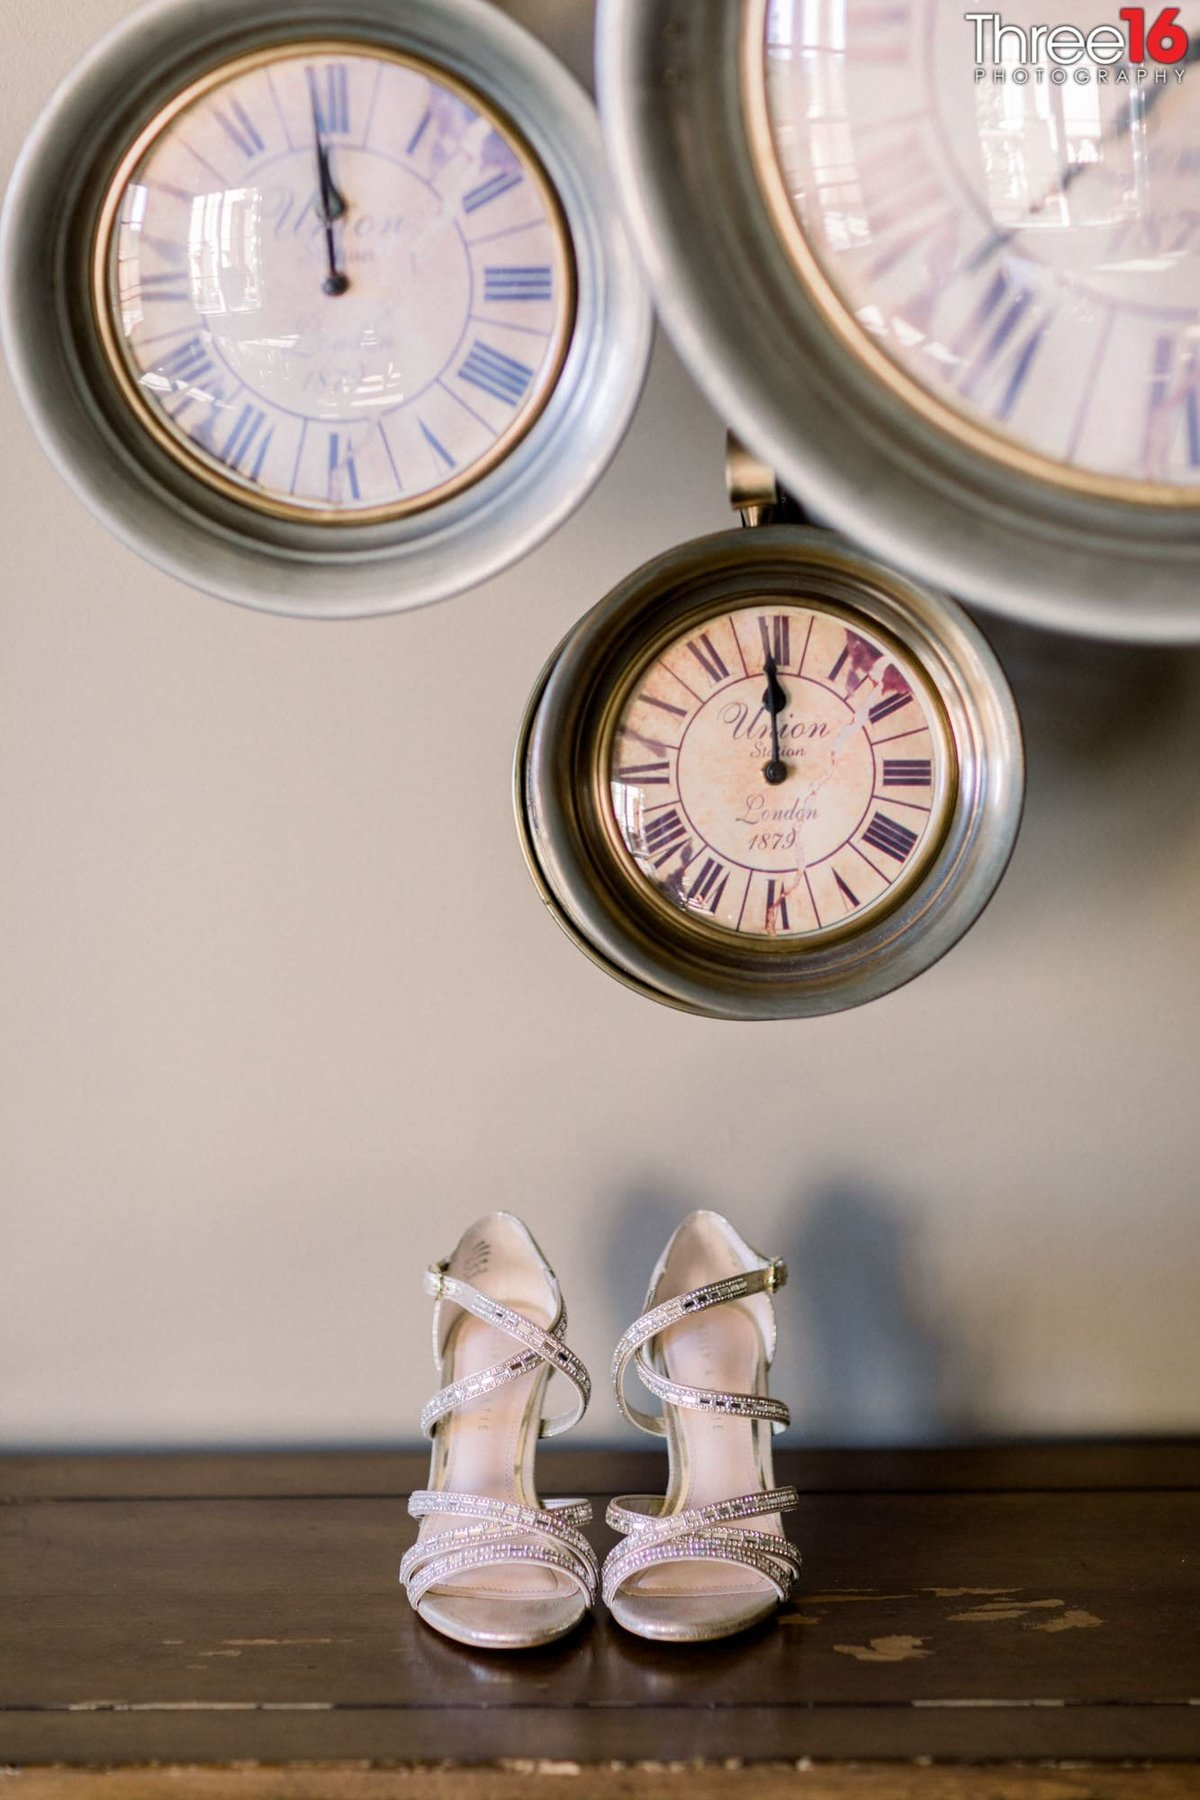 The time is right for the Bride's shoes